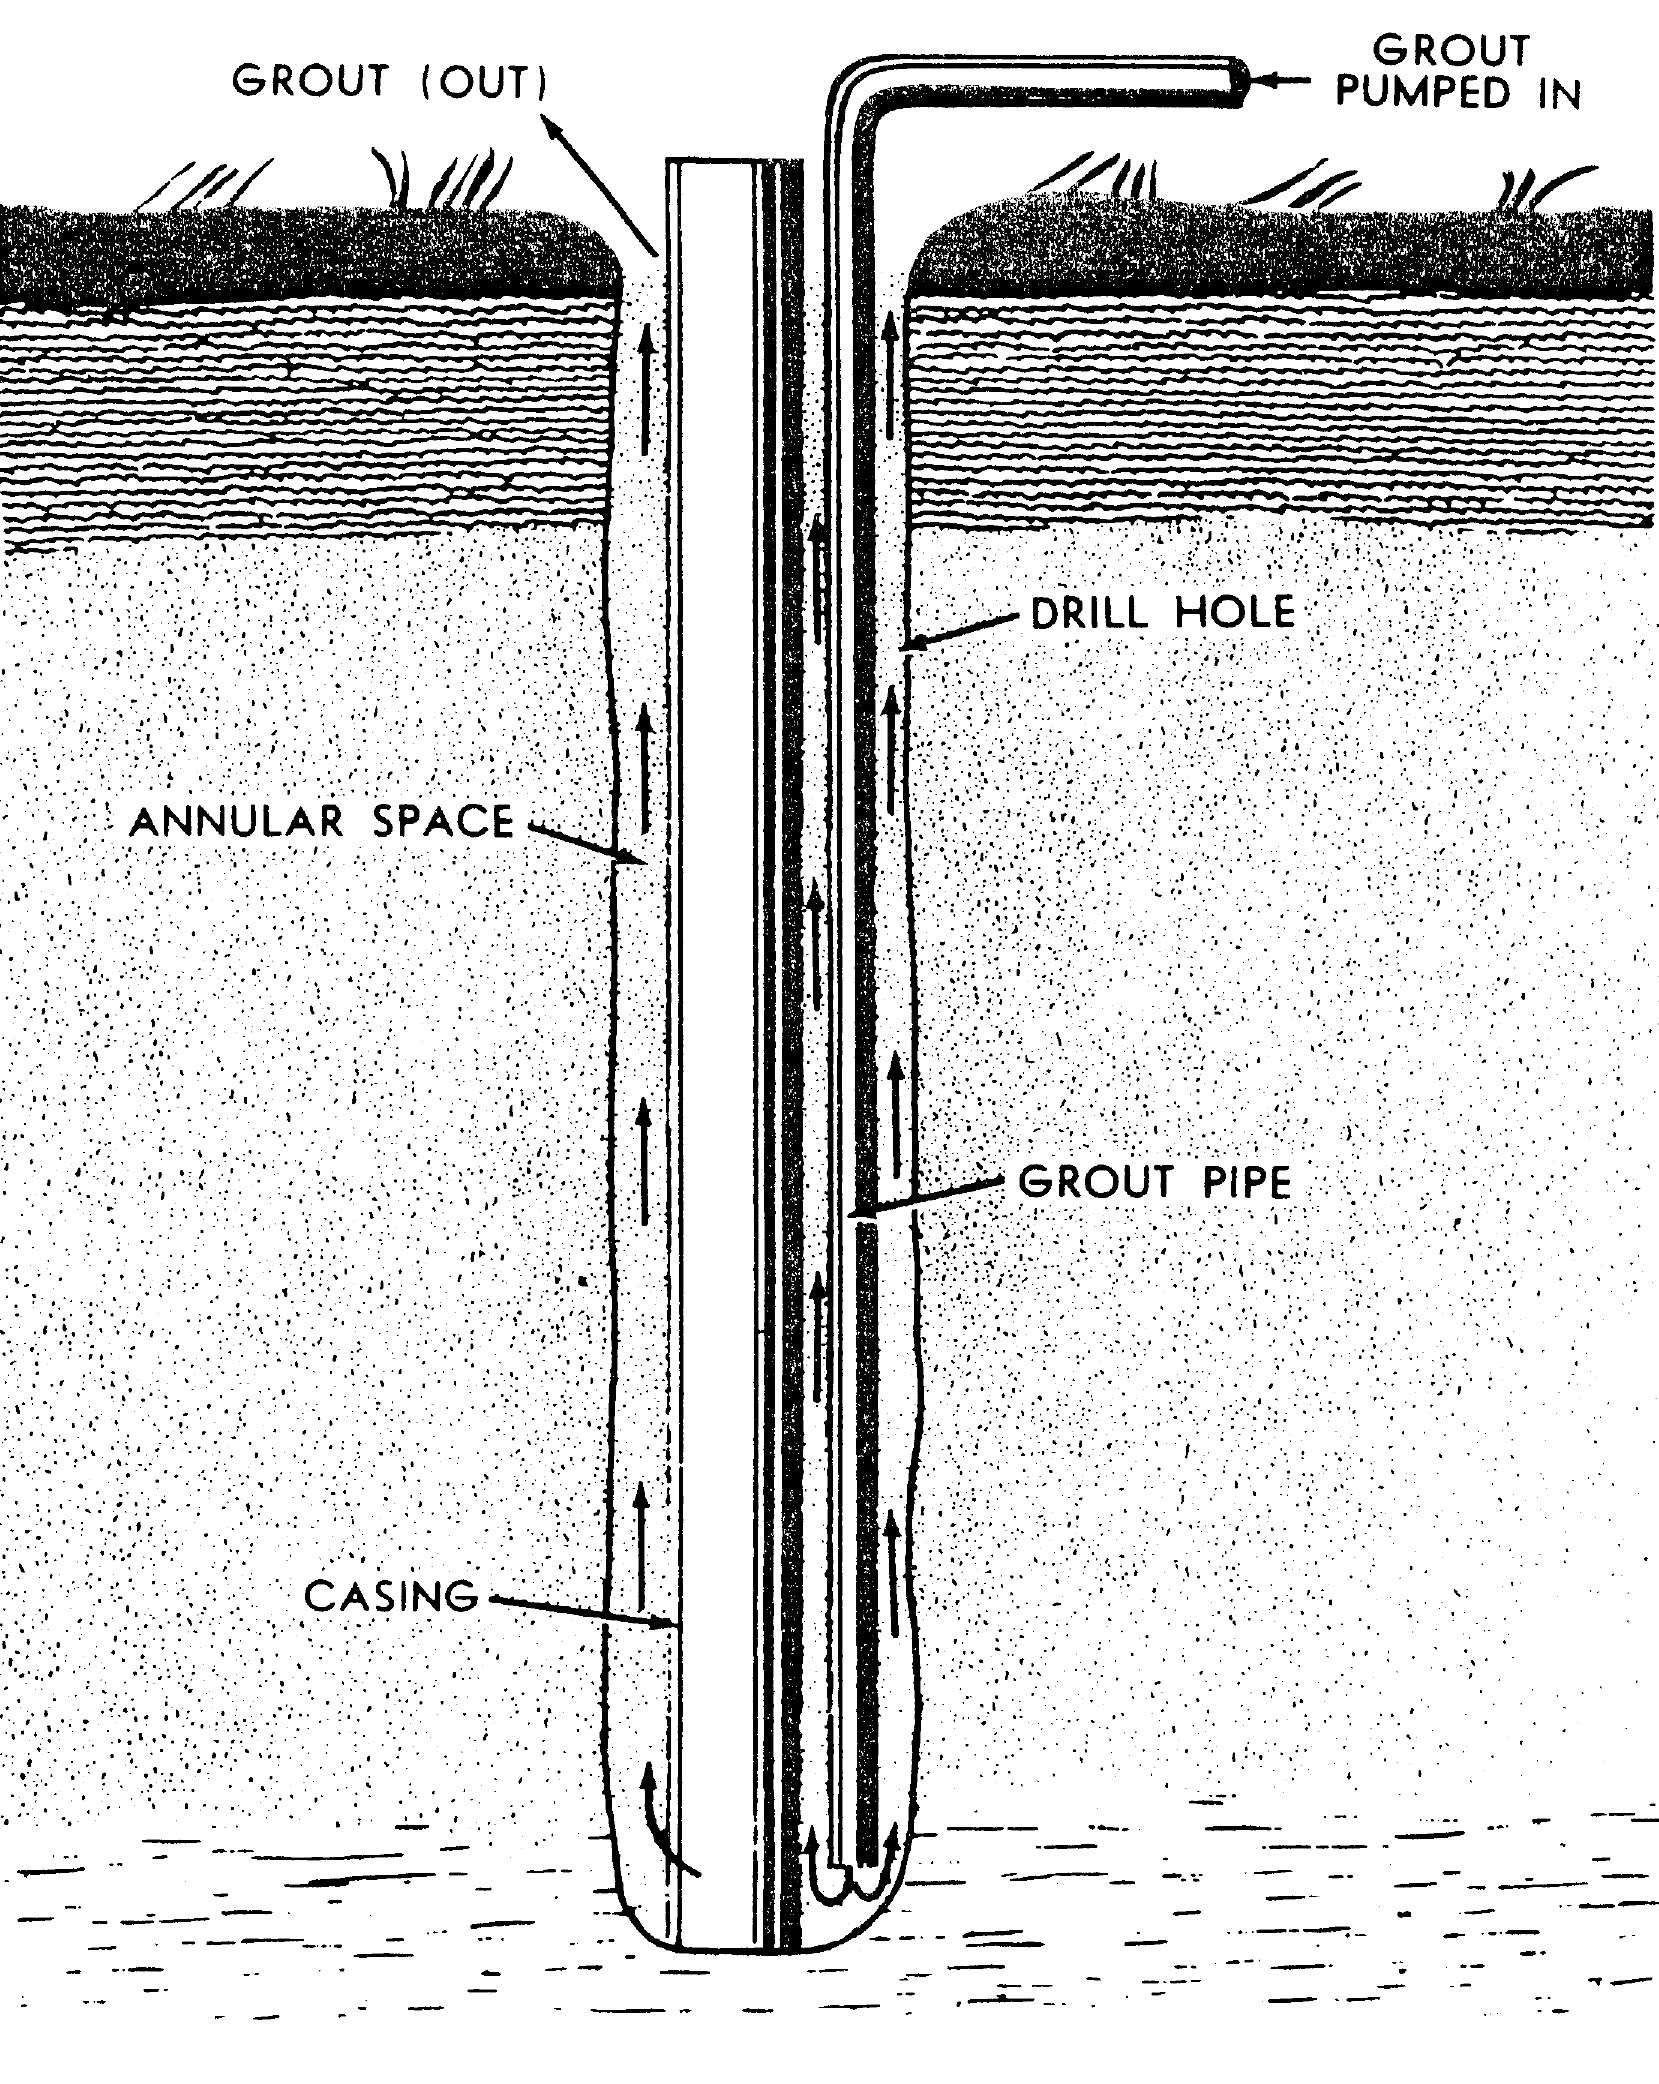 hight resolution of  of the casing until it reaches ground surface please note that not every county in pennsylvania requires pressure grouting view well grouting diagram